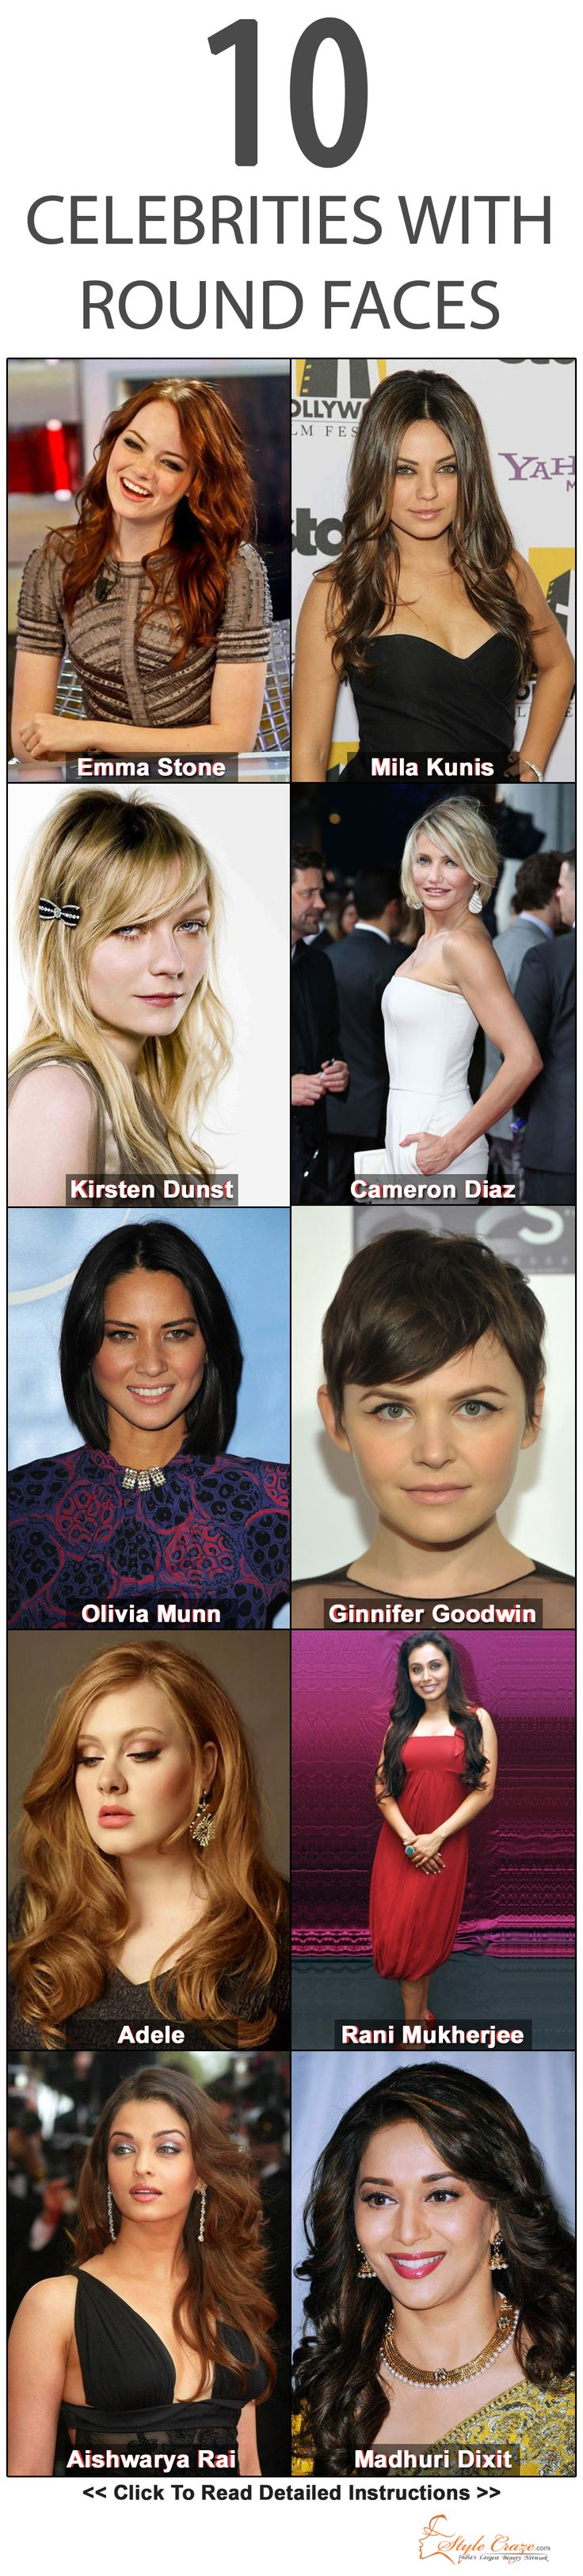 10-Celebrities-With-Round-Faces